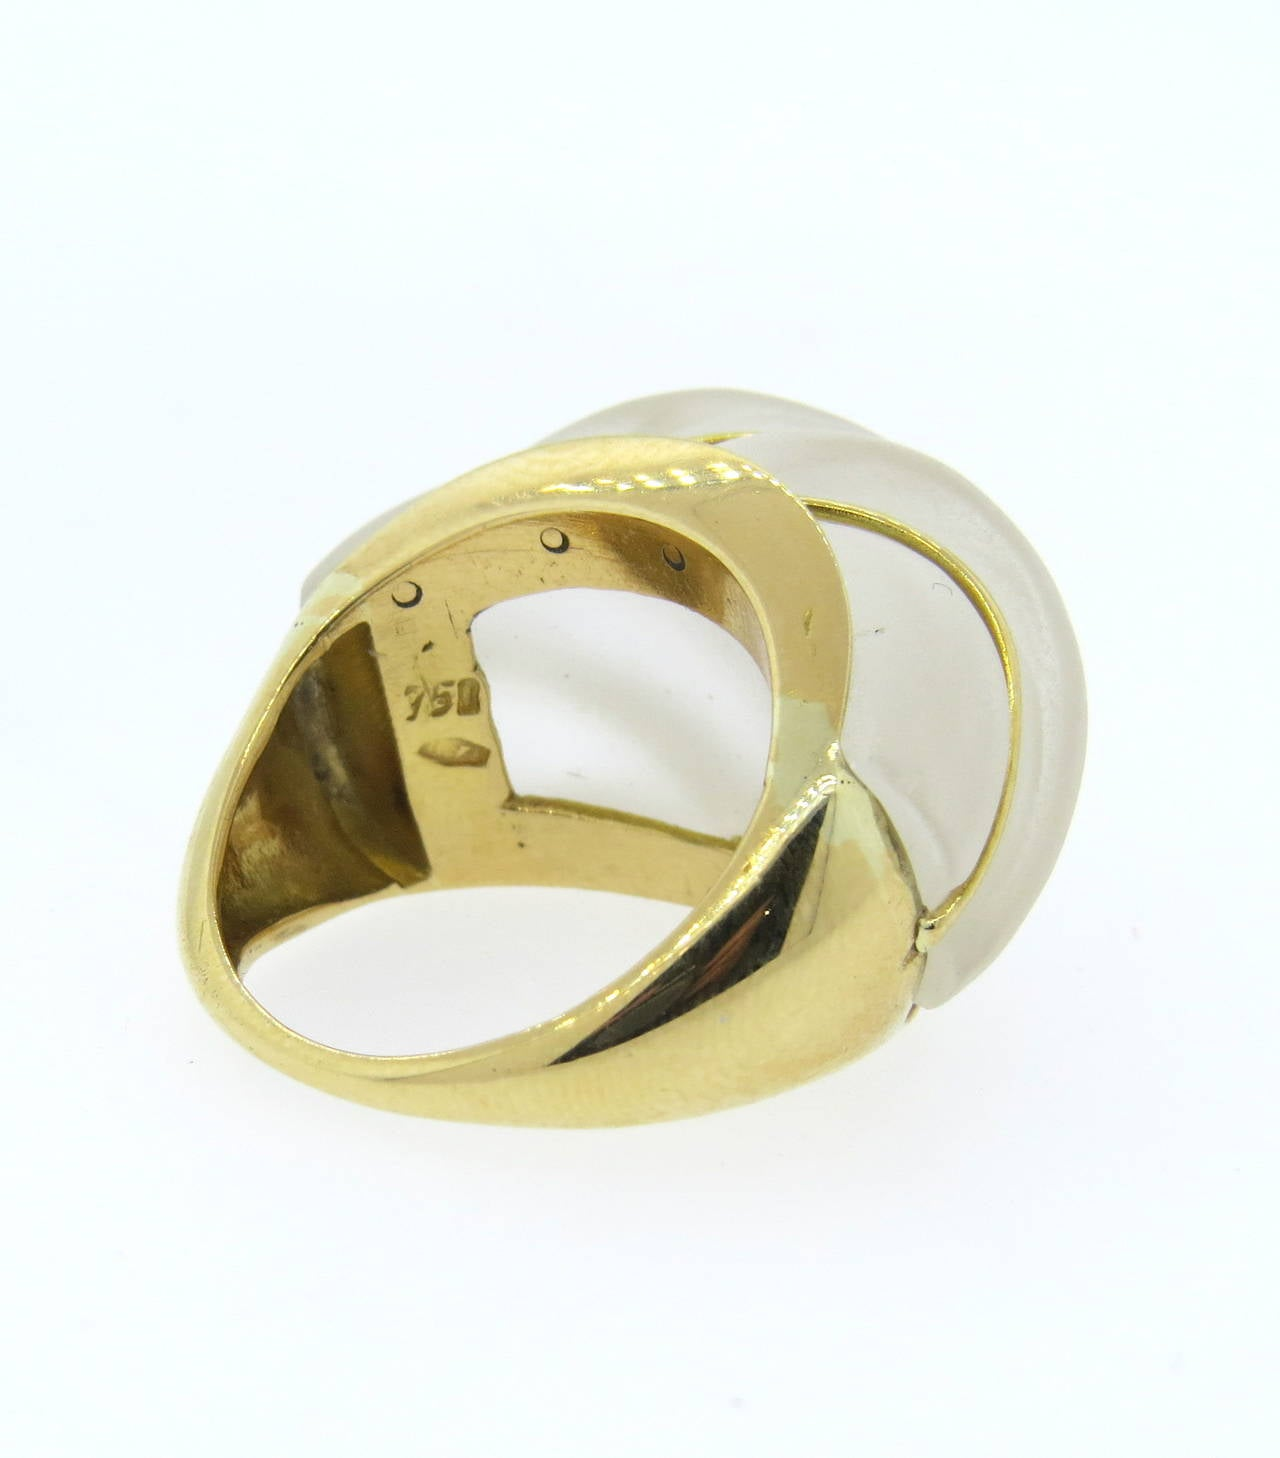 Frosted Crystal Gold Dome Ring In Excellent Condition For Sale In Lahaska, PA